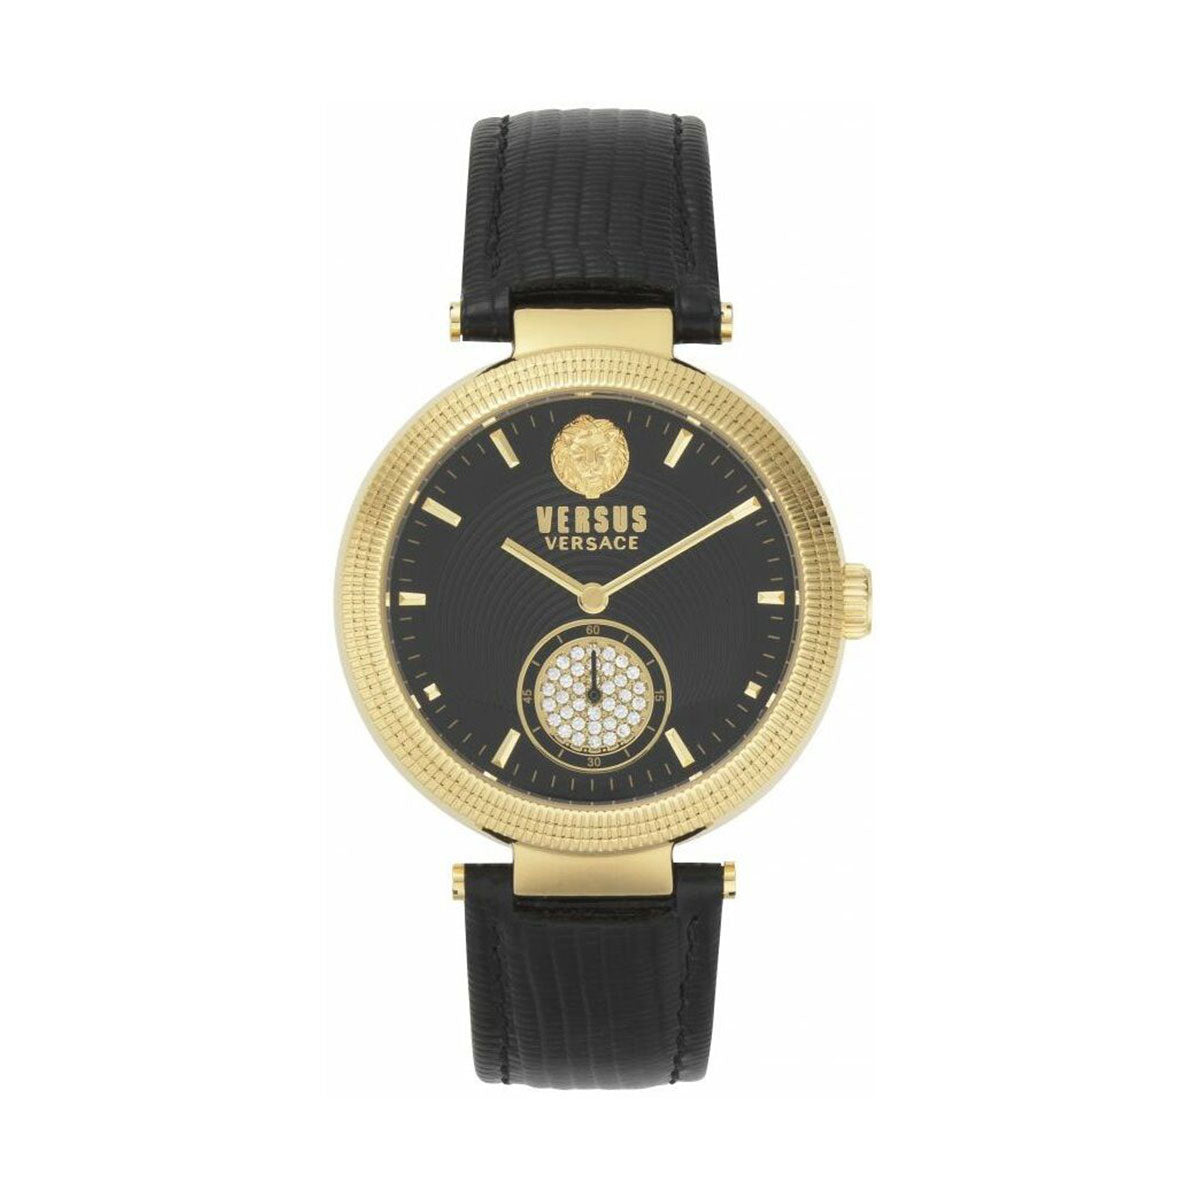 Versus Versace VSP791118 Ladies Watch